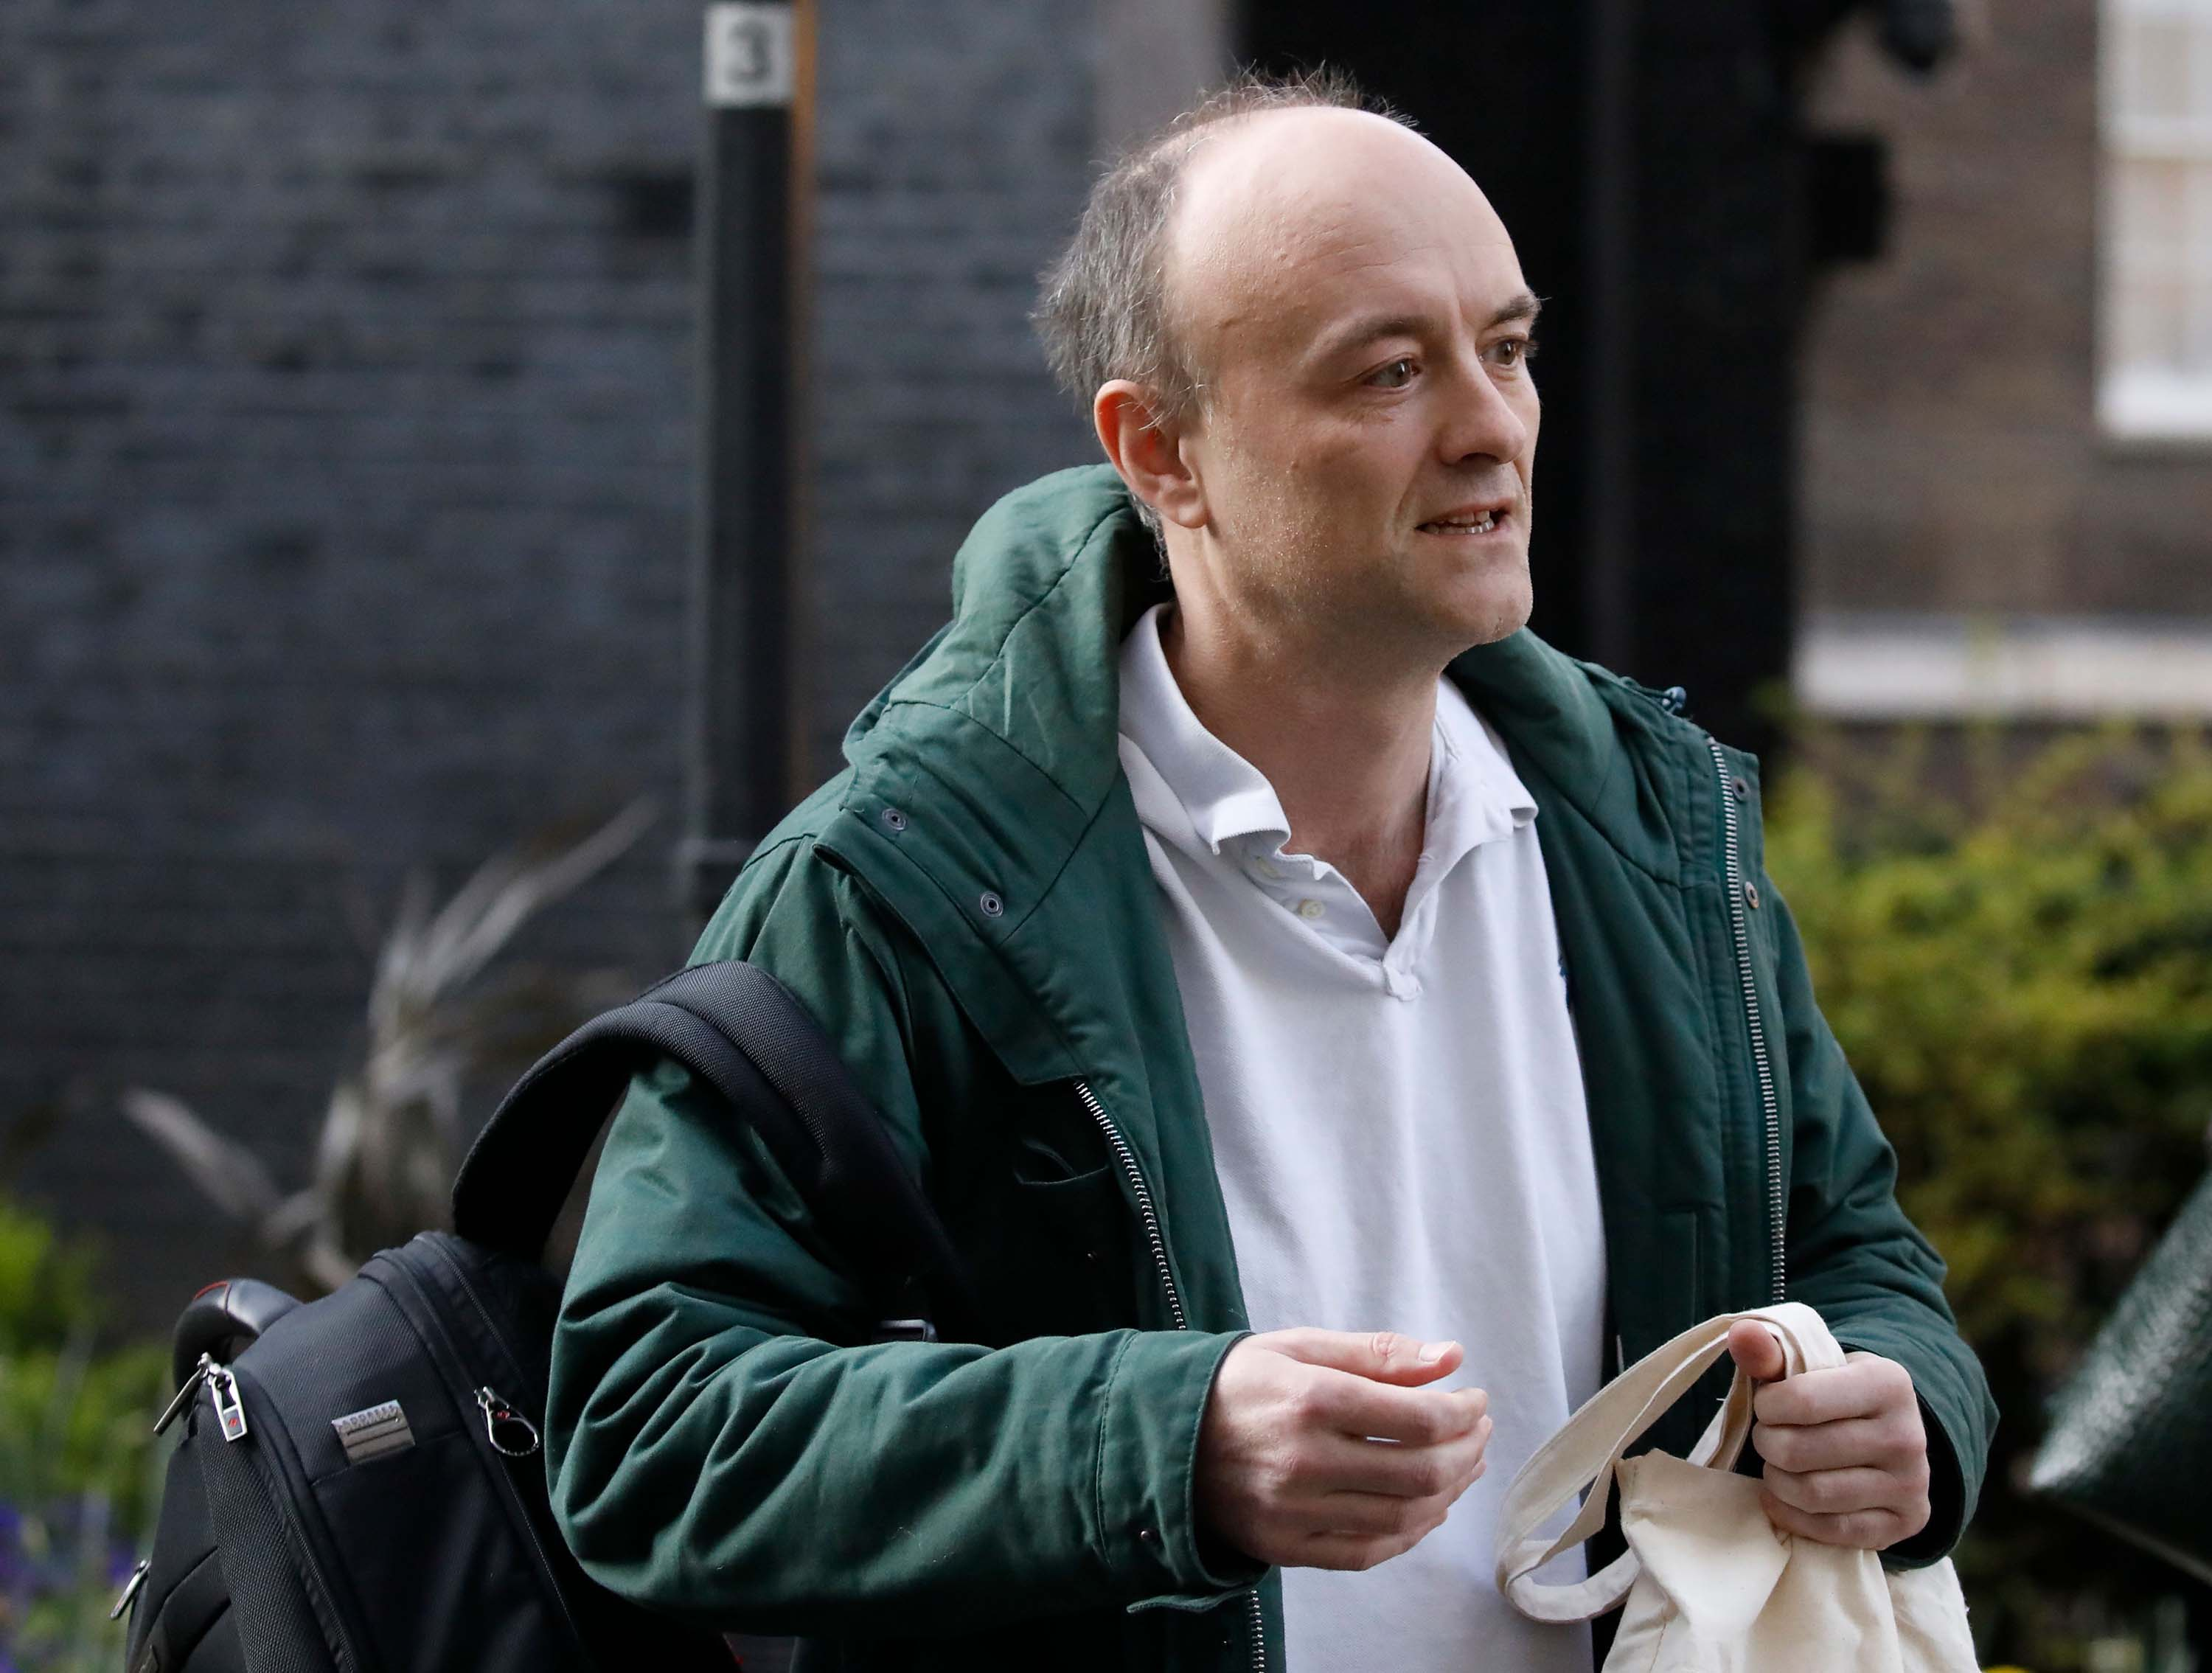 Dominic Cummings arrives at Downing Street on Friday, March 27.